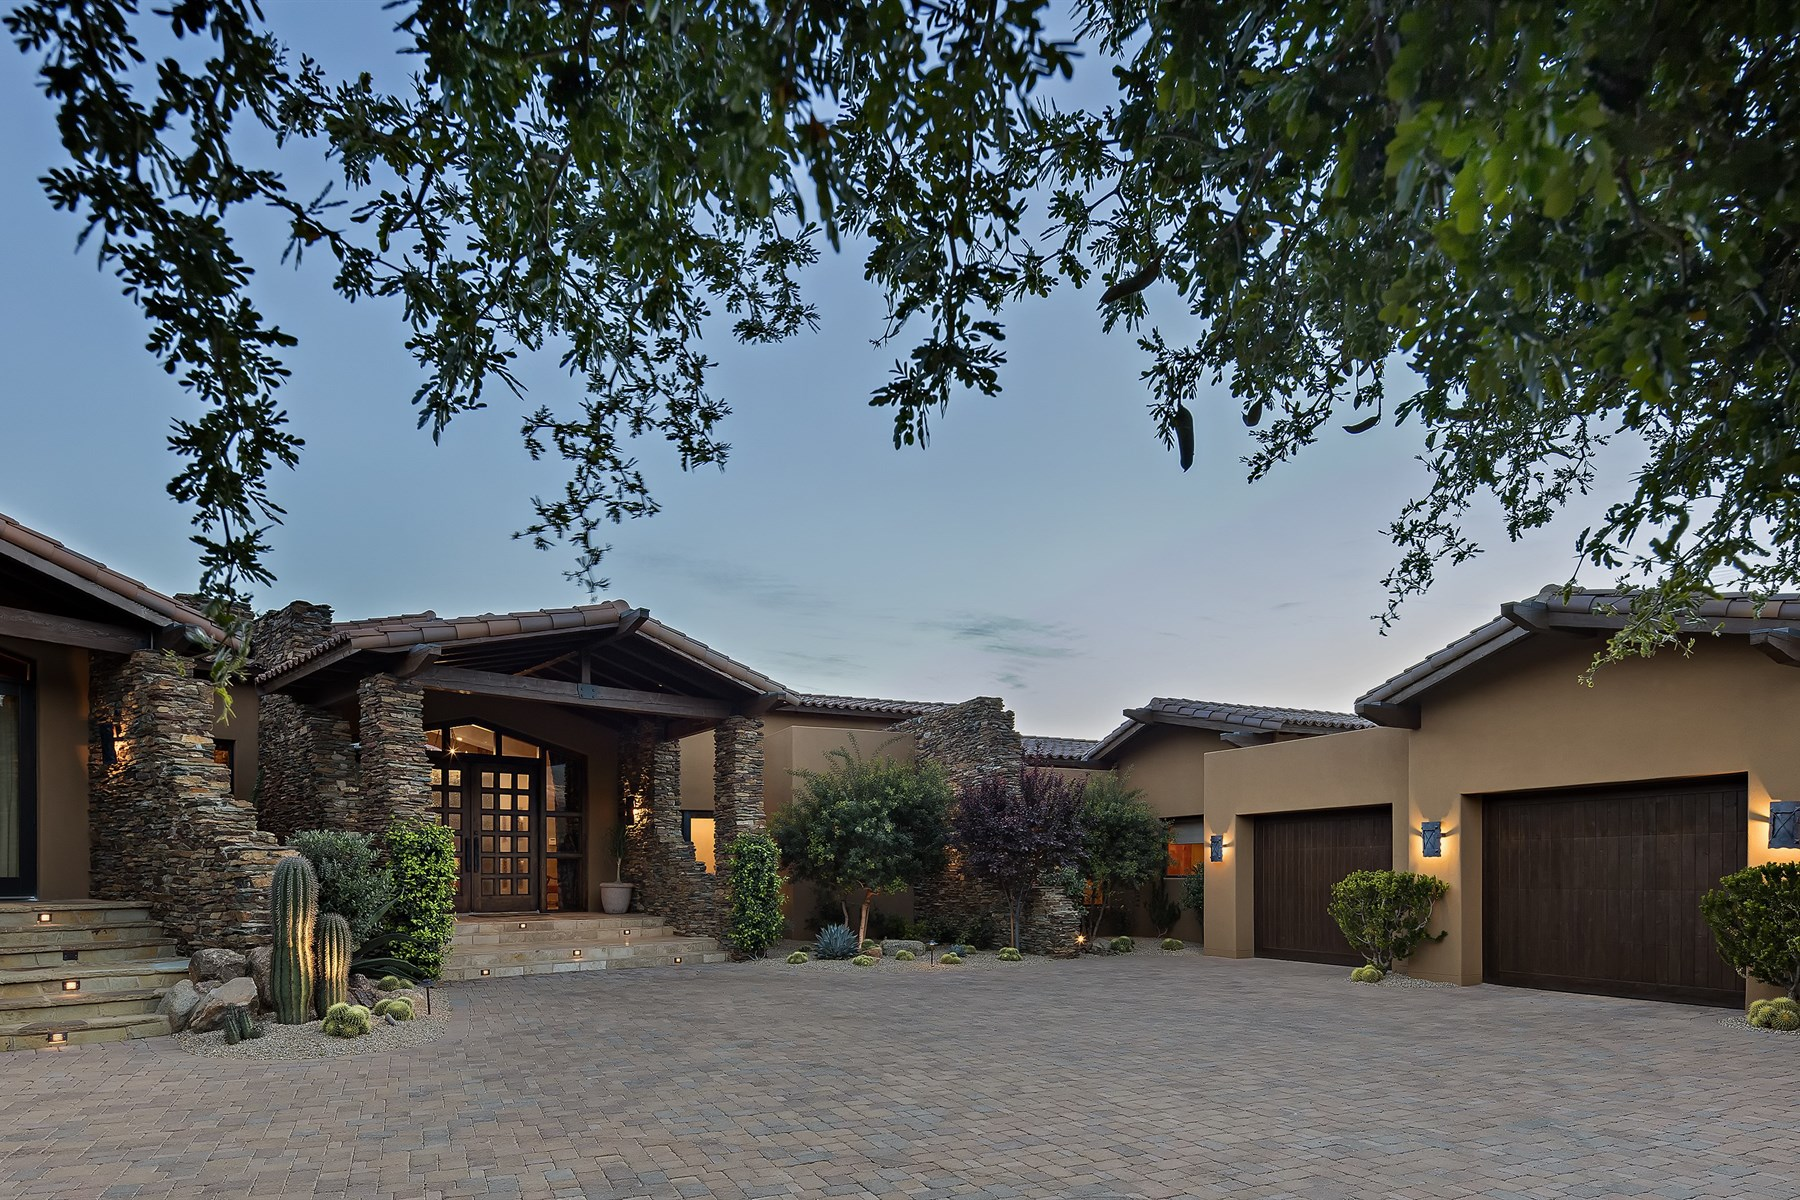 Single Family Home for Sale at Truly original home with the finest of finishes on a premier home site 9793 E Falling Star Dr, Scottsdale, Arizona, 85262 United States